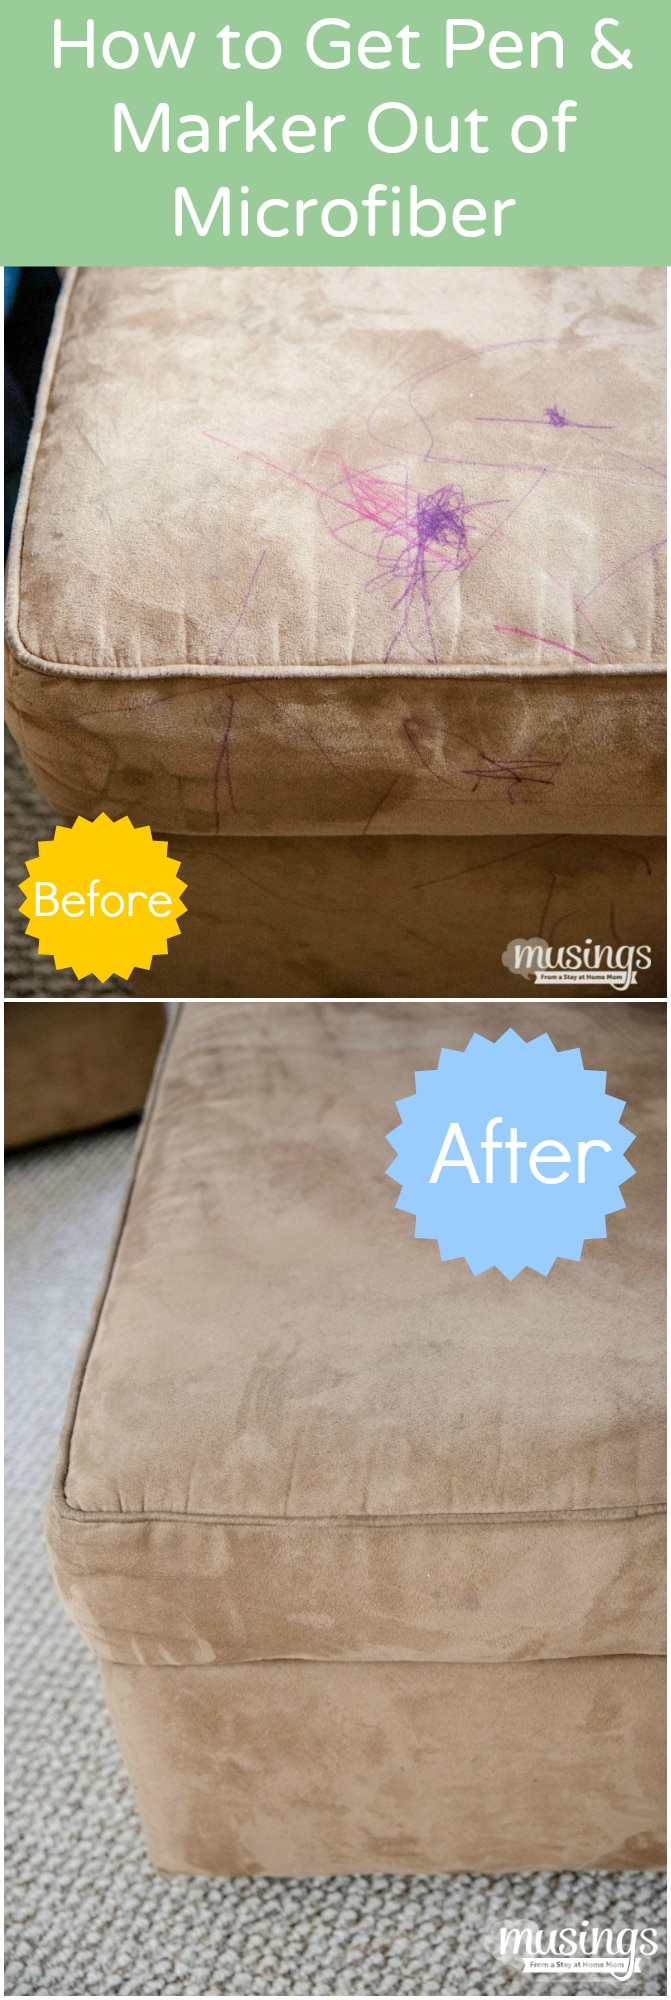 How To Clean A Microfiber Couch Plus How To Remove Pen